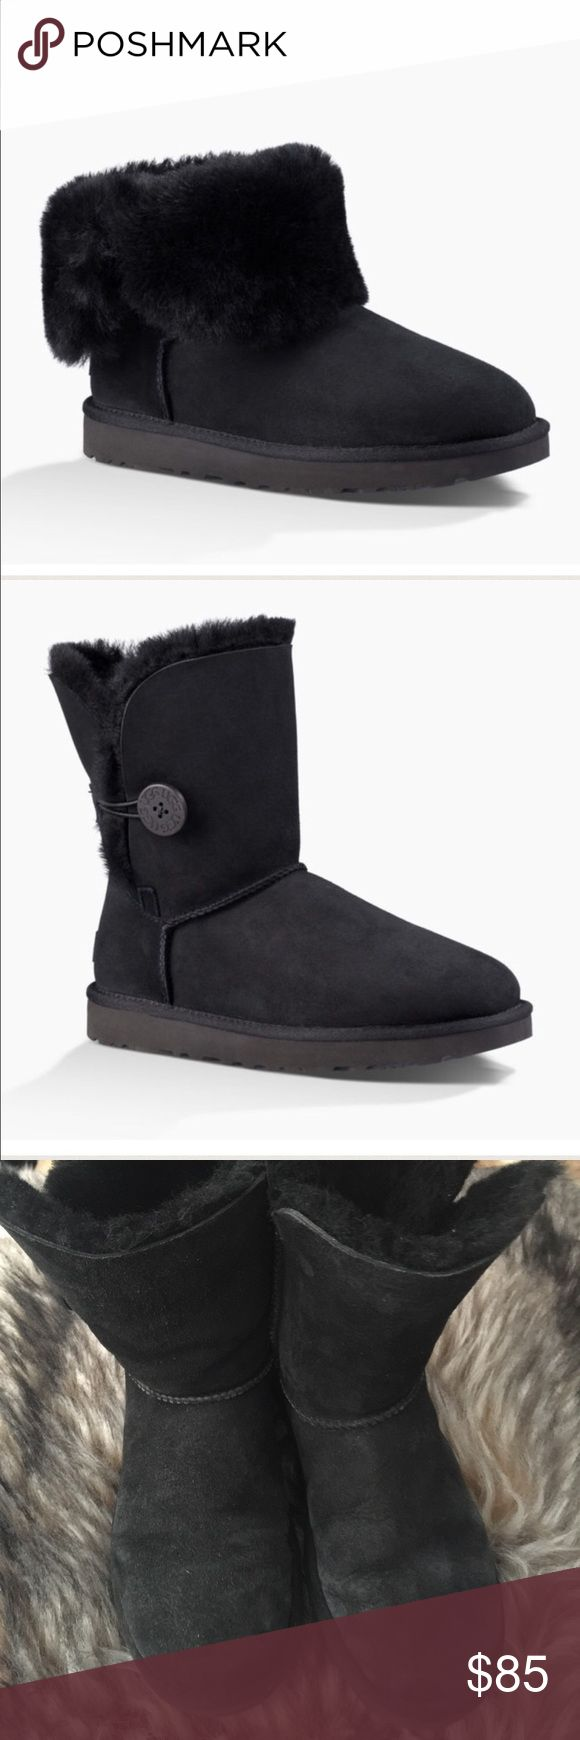 UGG Australia Black Bailey Button Short Fold Boots Authentic Ugg Australia Sheepskin black suede short Bailey Button Boots. Size 7. Retail price $170. Amazing condition with little fading, no rips, stains or odors. Soles are still in amazing condition! Perfect for a women's size 8. Meant to be worn with no socks. Uggs keep feet cool in summer and warm in winter. Buttons still perfectly attached. Smoke, pet  free home. No trades please 💕 Pretreated Twinface and suede Wood button closure…